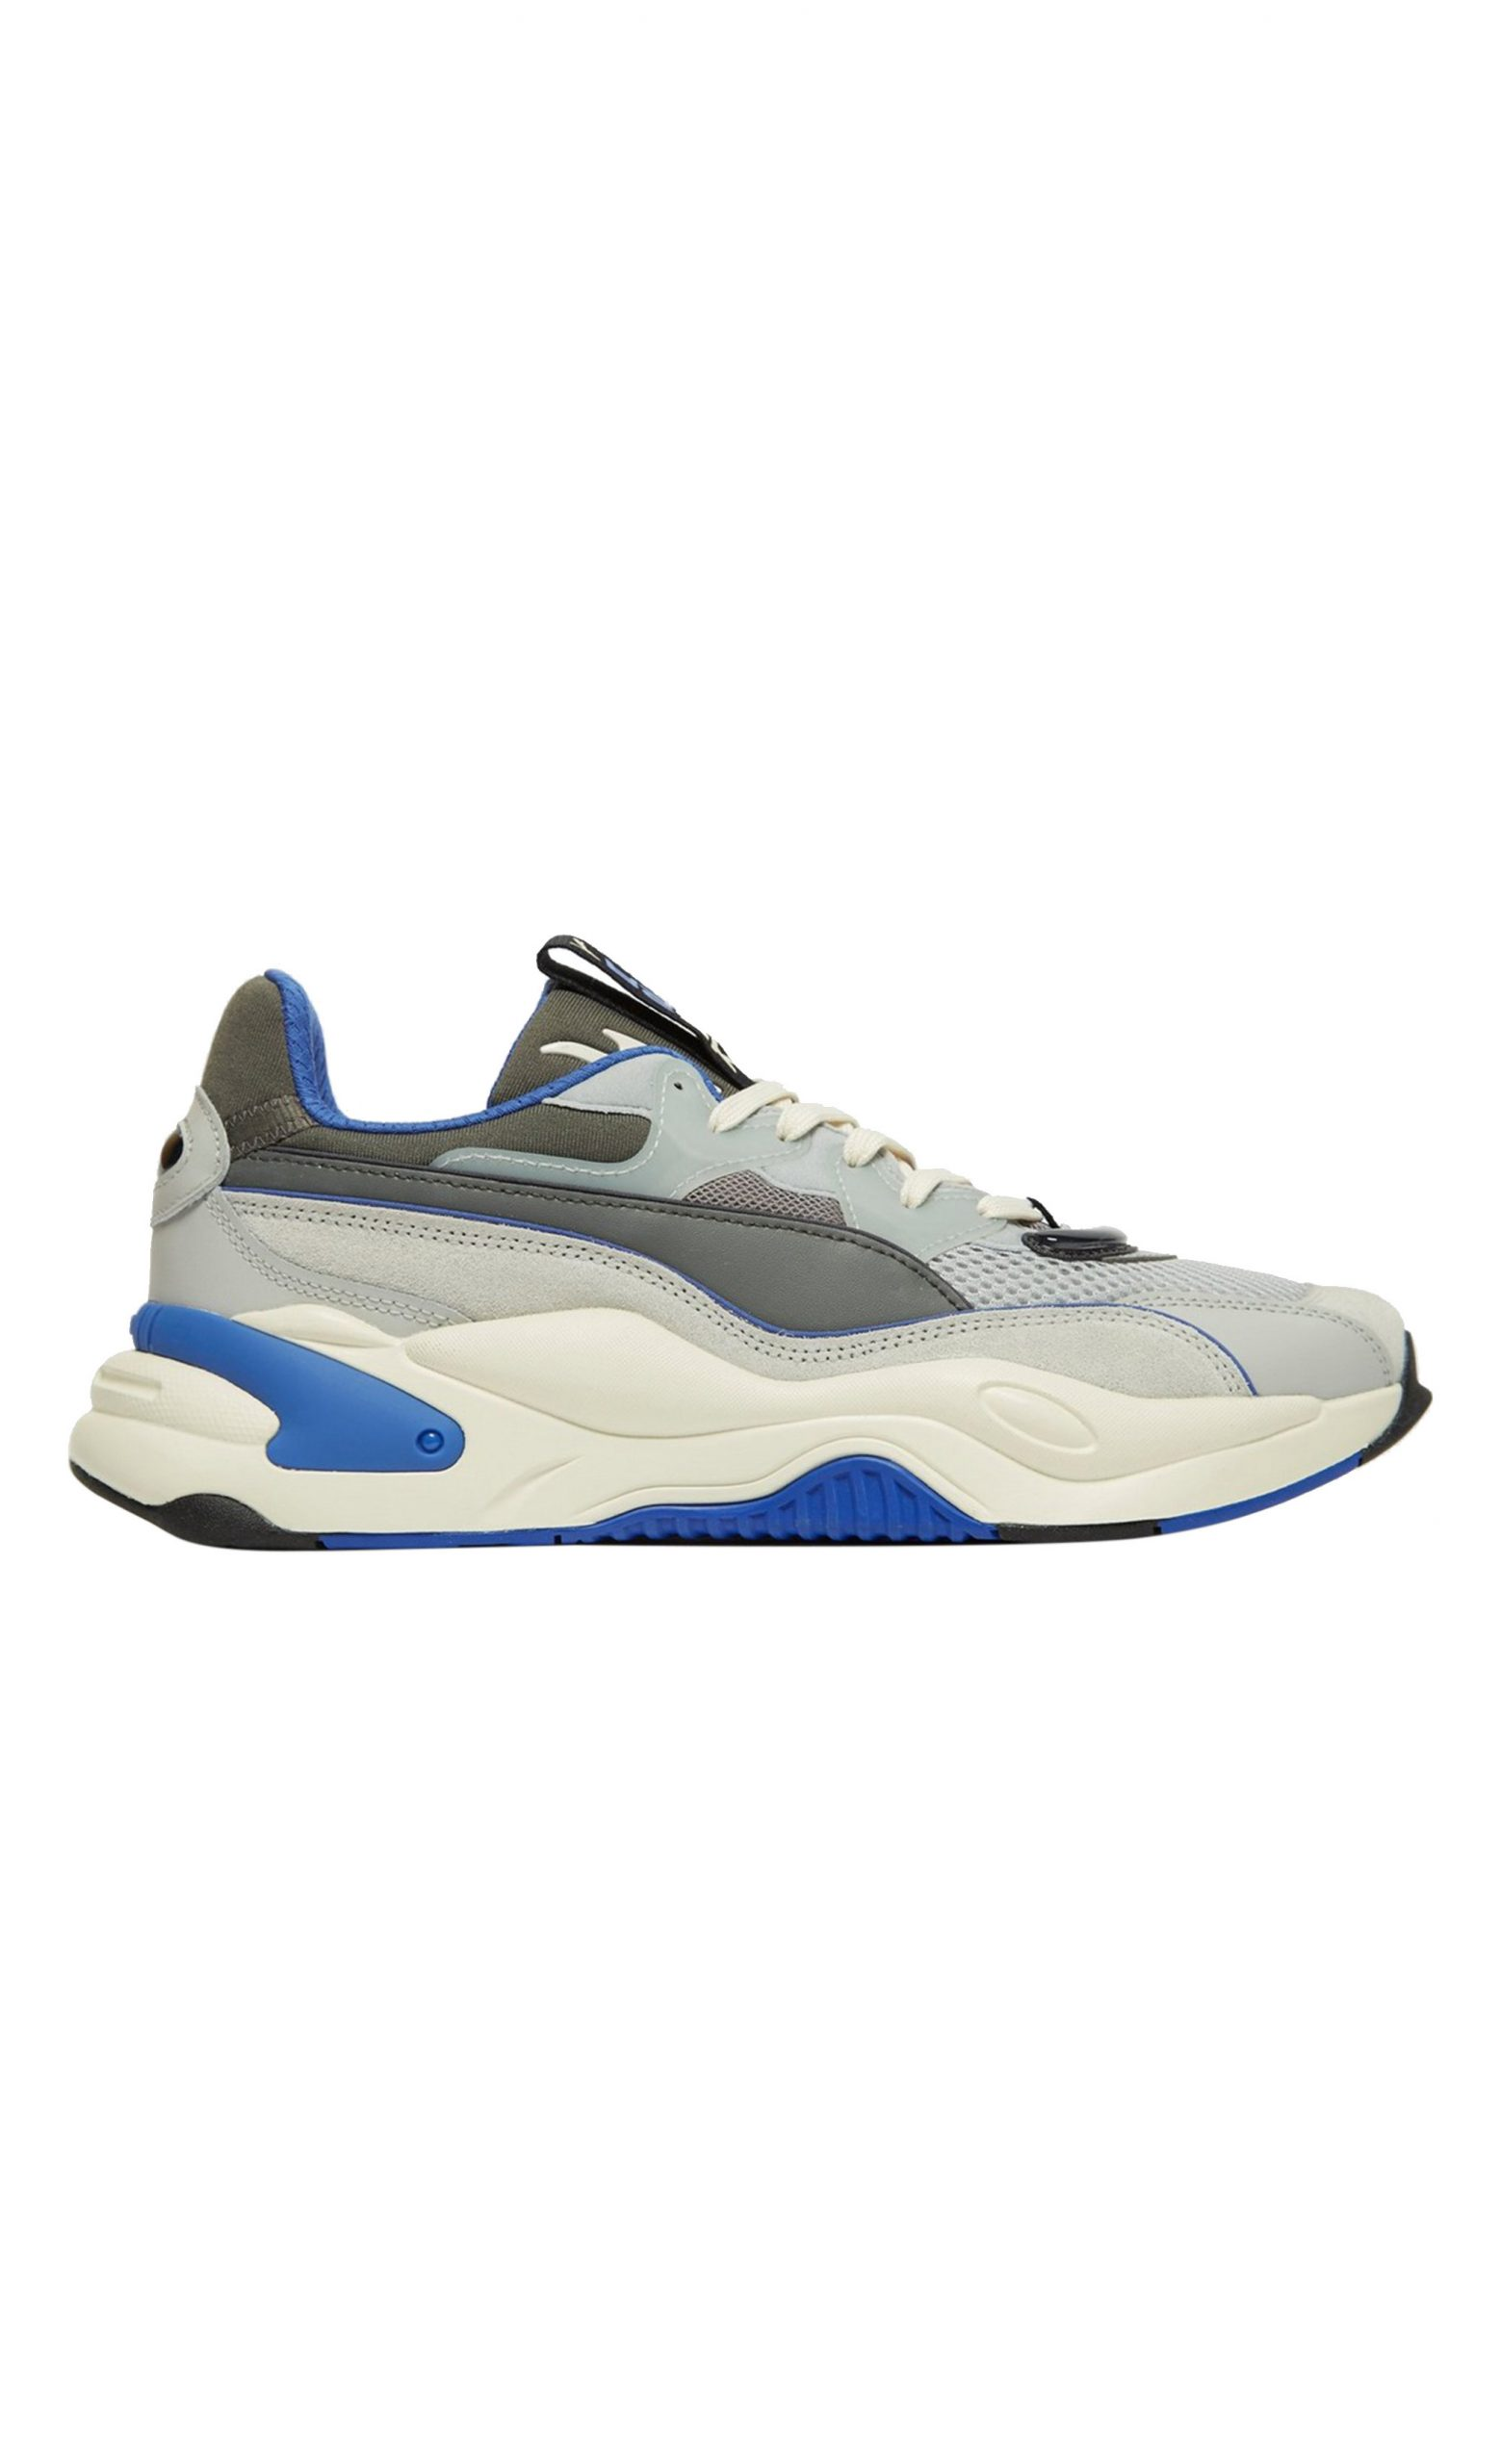 Puma RS-2K Internet Exploring | Wooden Store